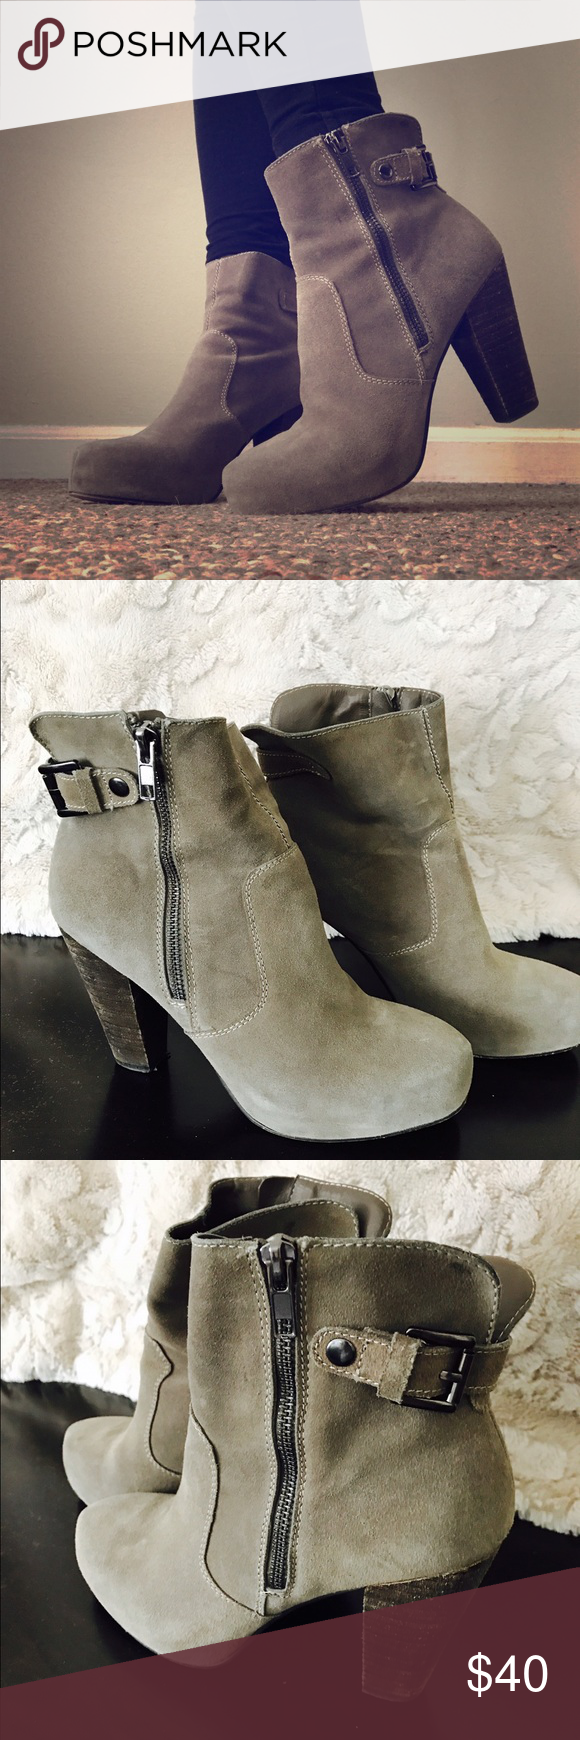 Suede ankle boot with zipper and wooden heel Stylish grey boots with zipper and strap detail. Perfect with any outfit! Barely worn - like new. Steve Madden Shoes Ankle Boots & Booties